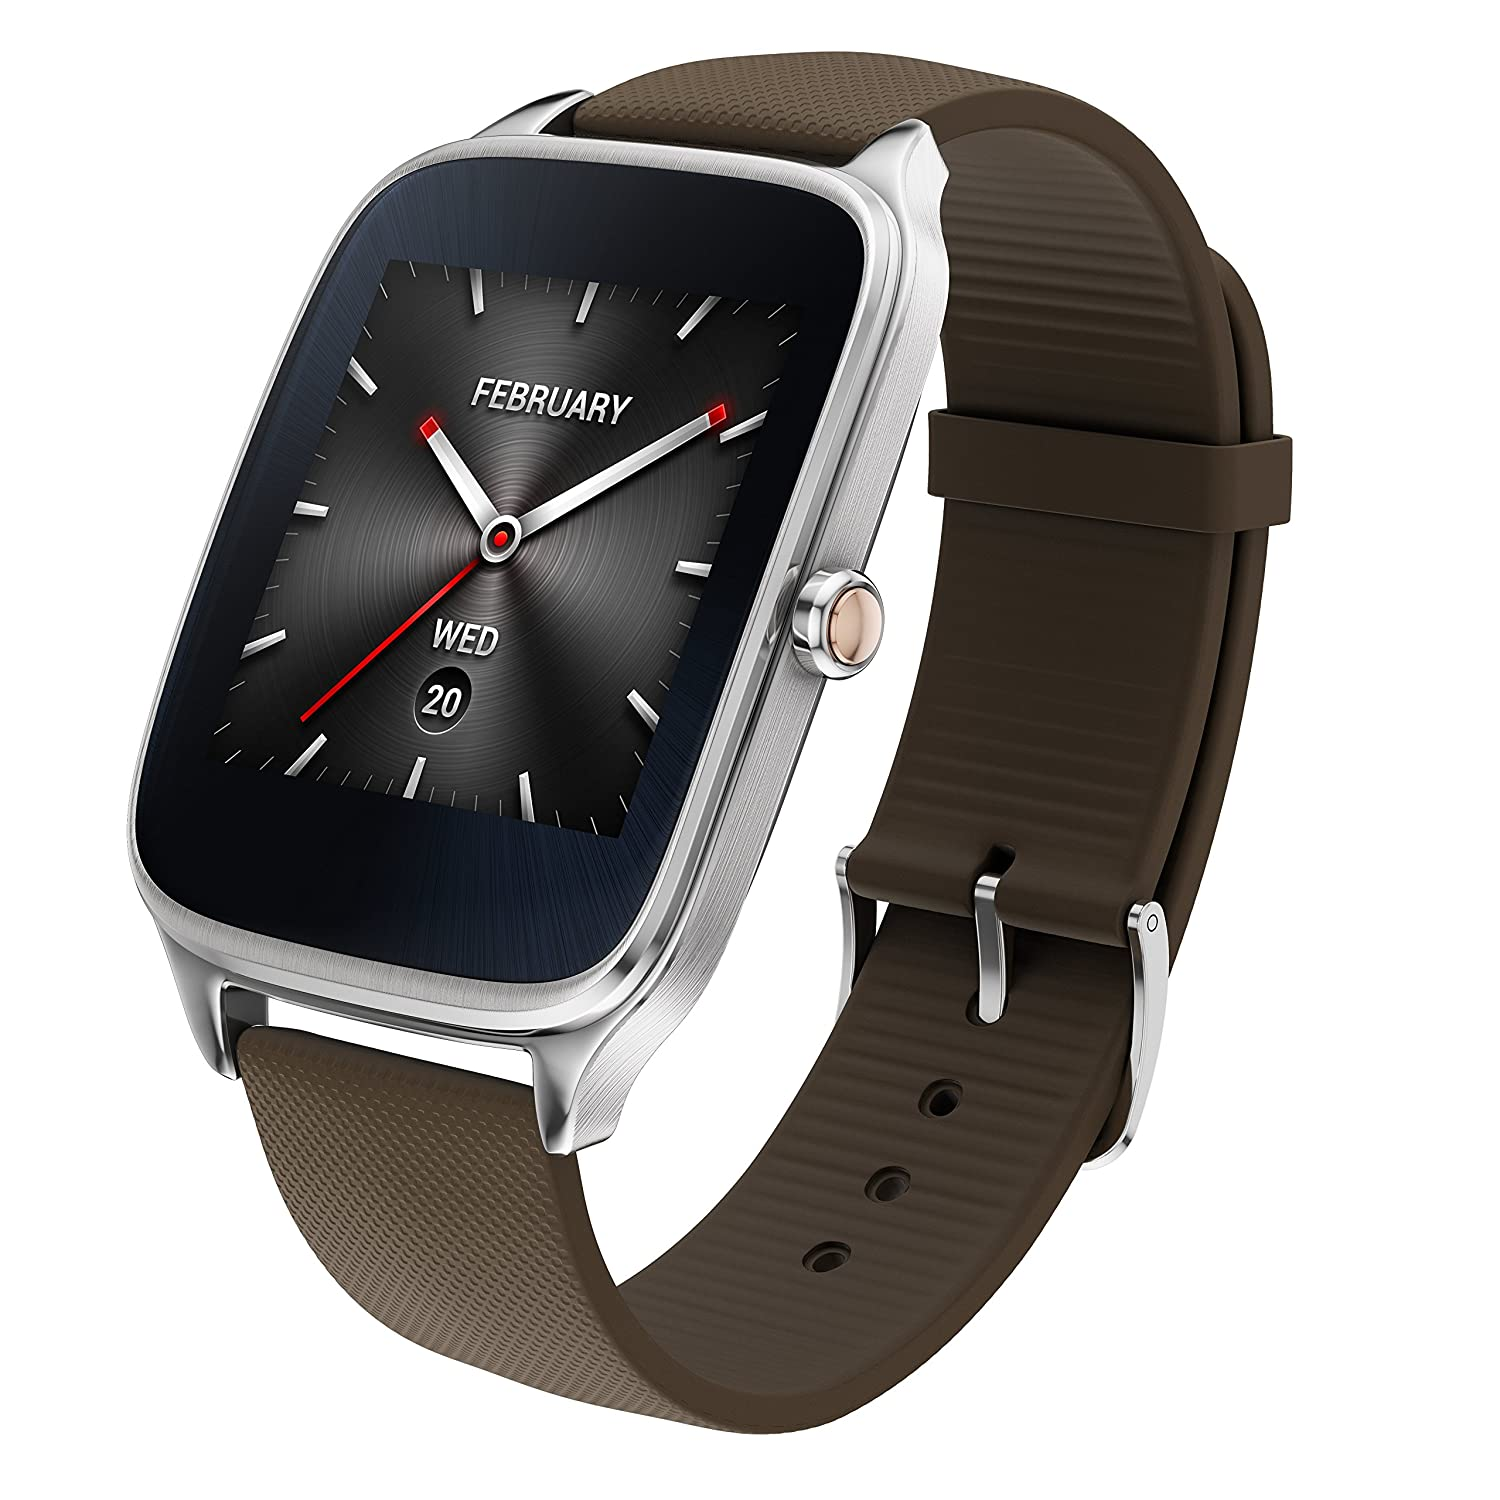 ASUS ZenWatch 2 Android Wear Smartwatch - 1.63